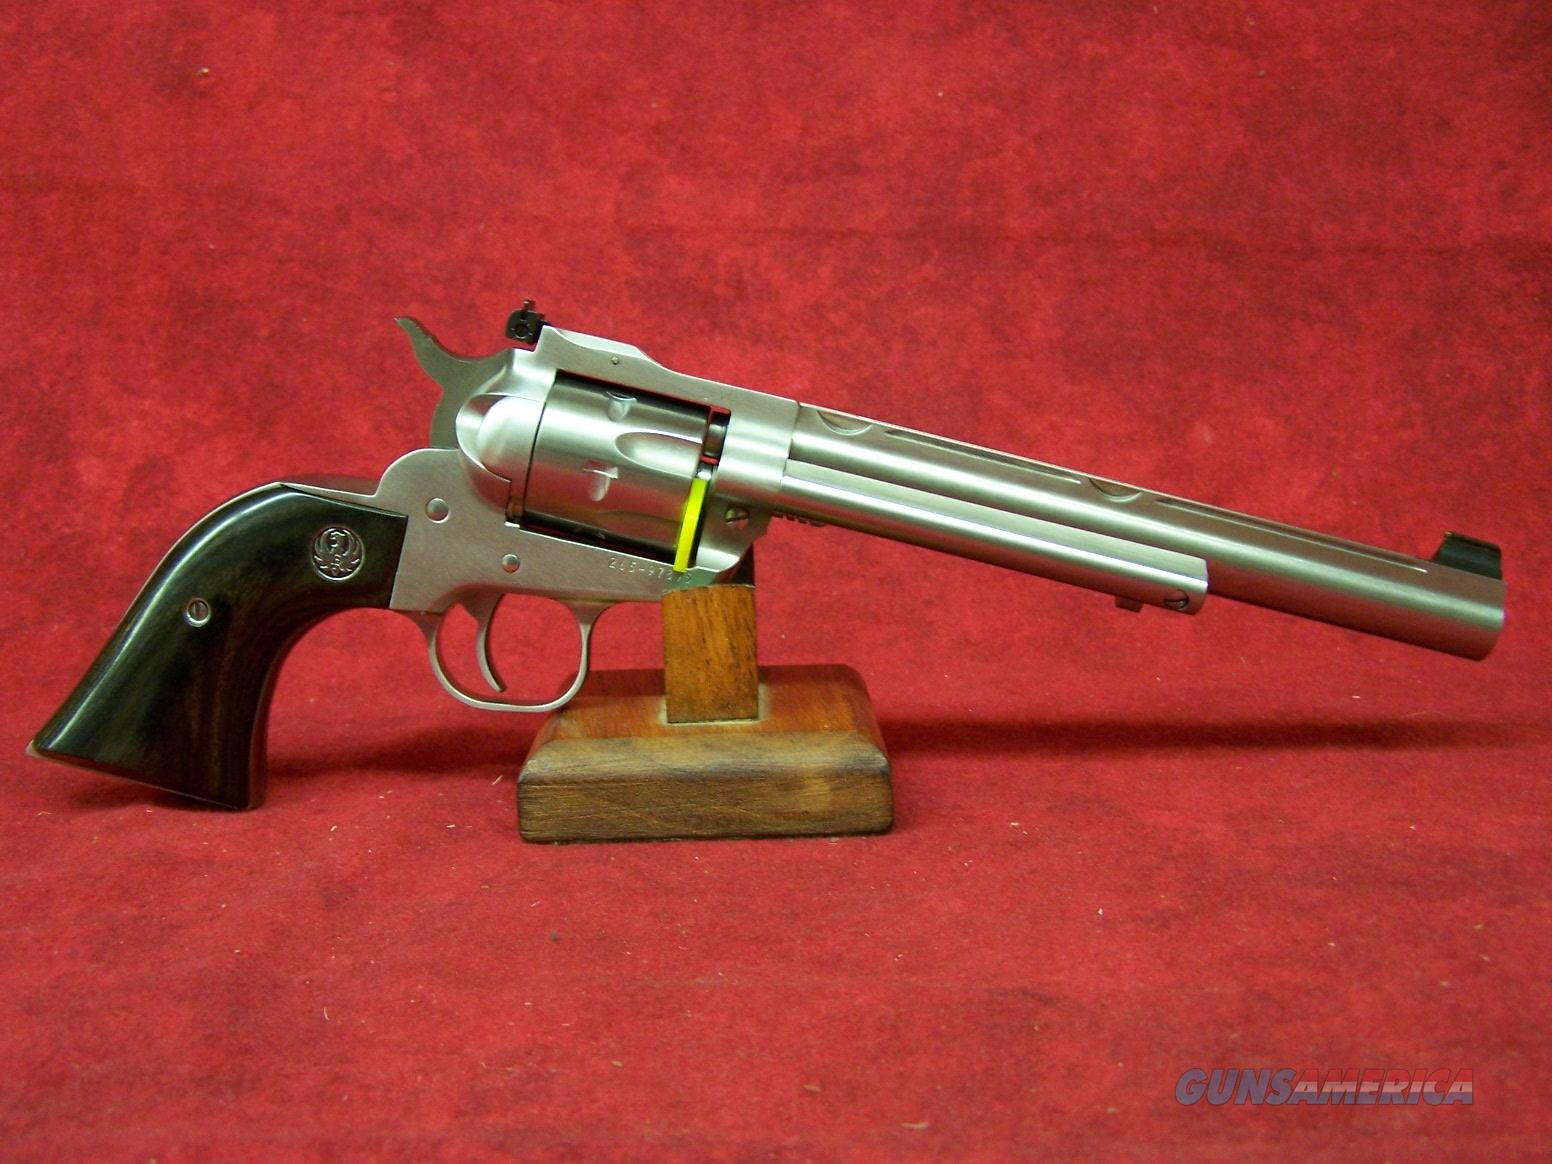 "Ruger Single Six Hunter 22LR/22WMRF 7.5"" Barrel (00662)  Guns > Pistols > Ruger Single Action Revolvers > Single Six Type"